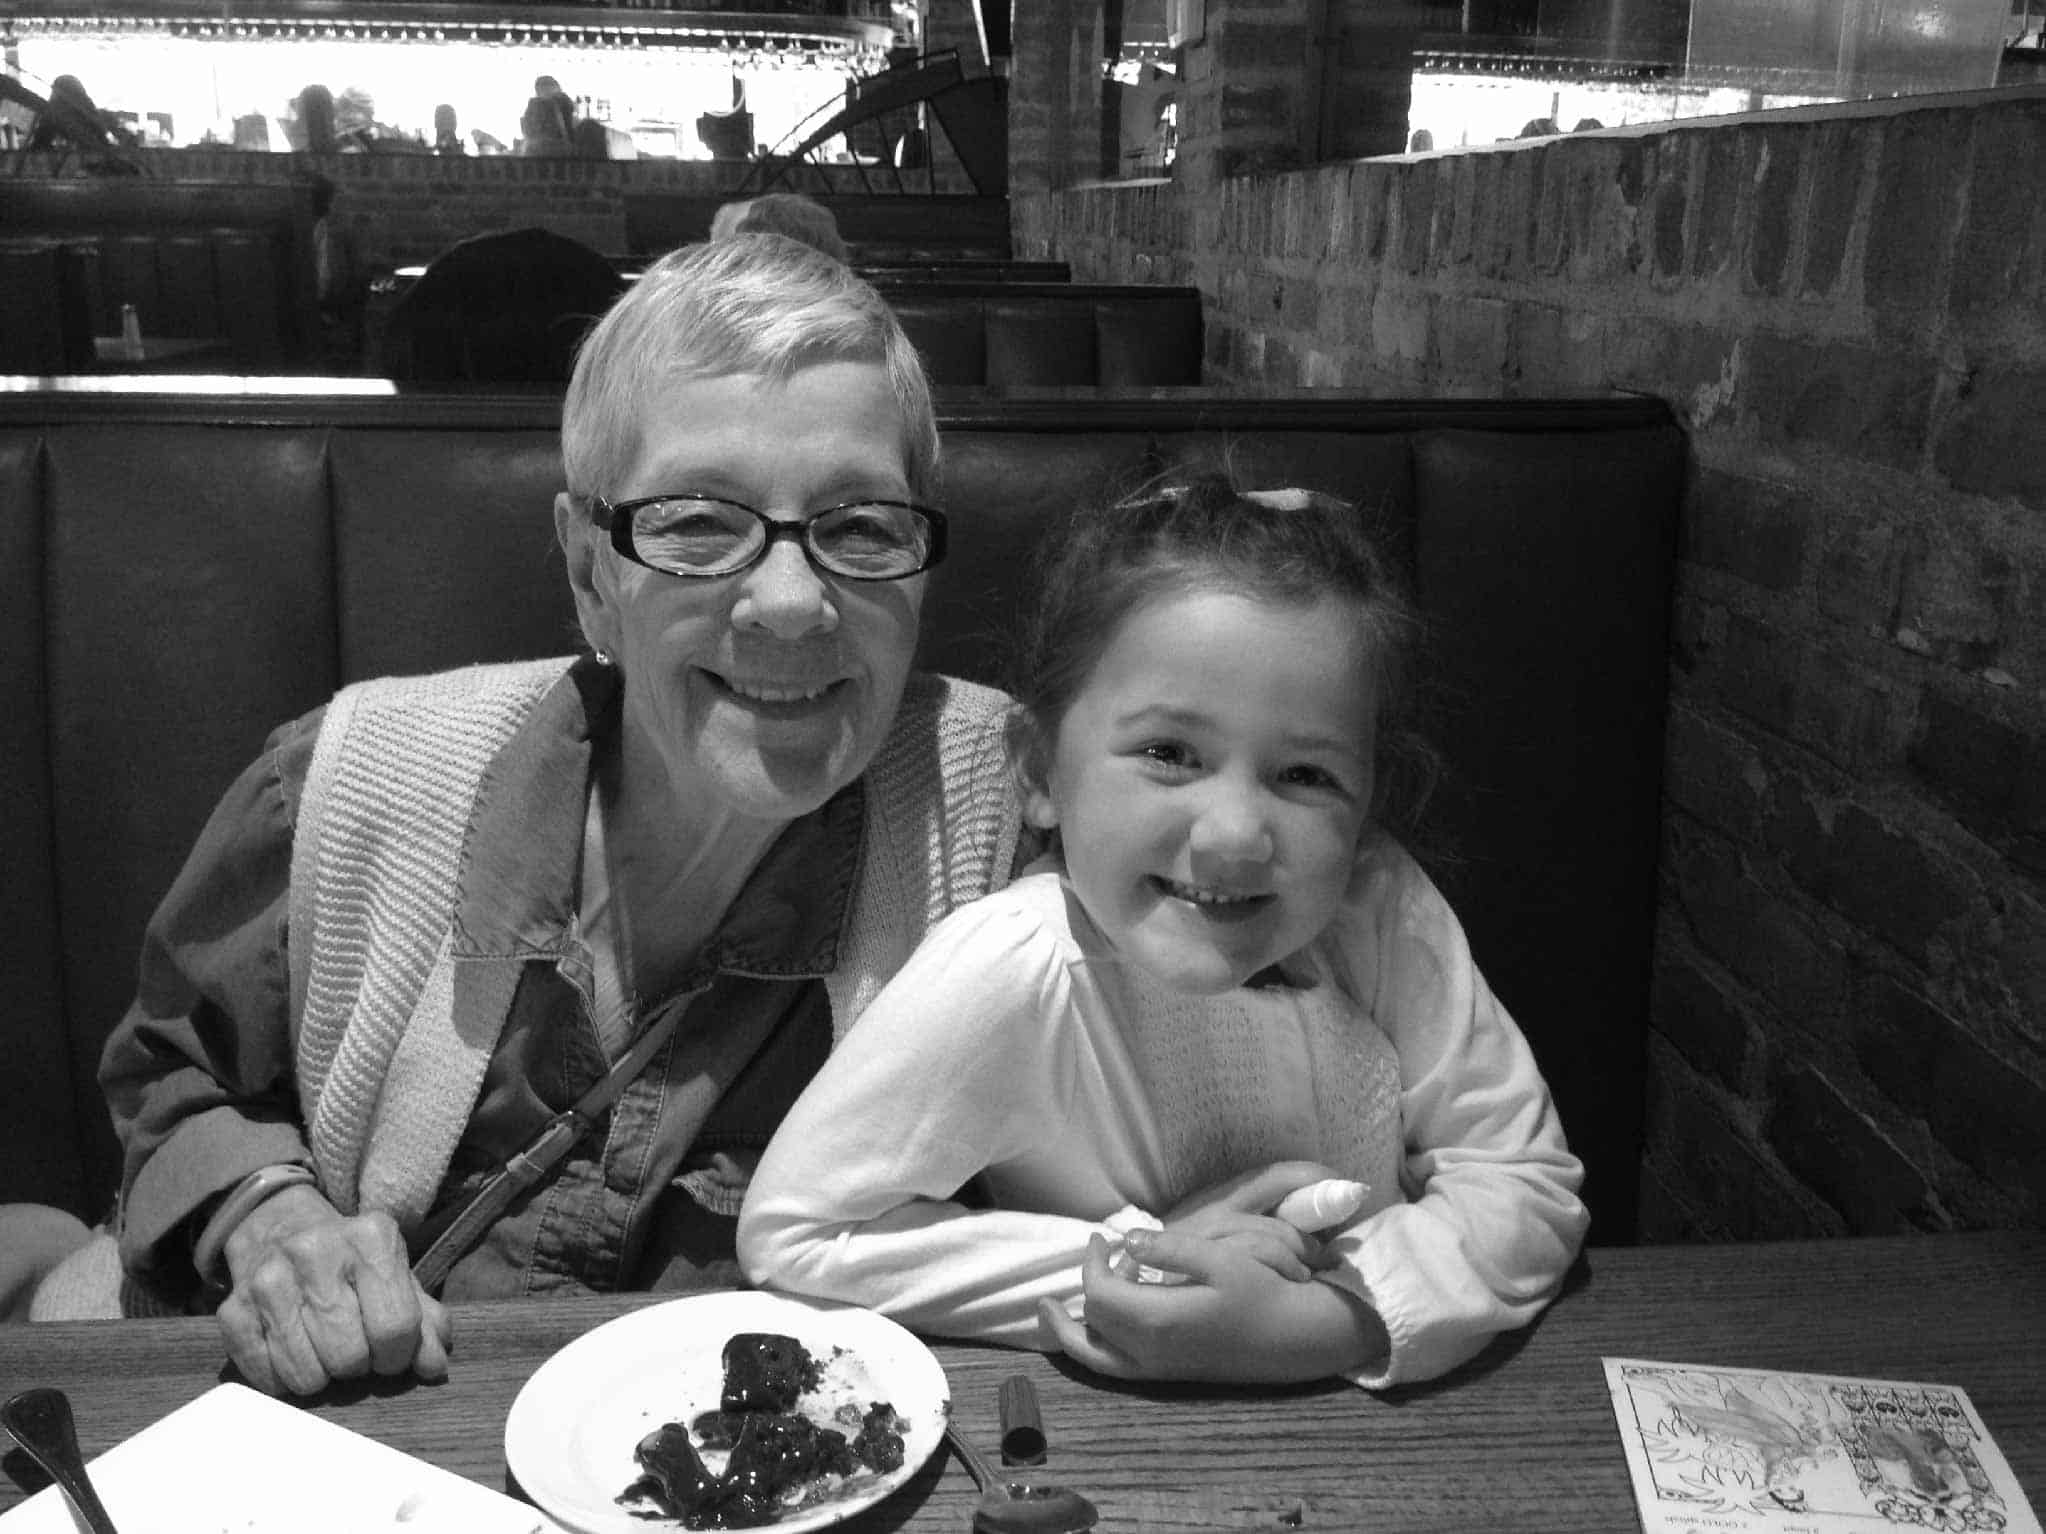 Cindy with granddaughter